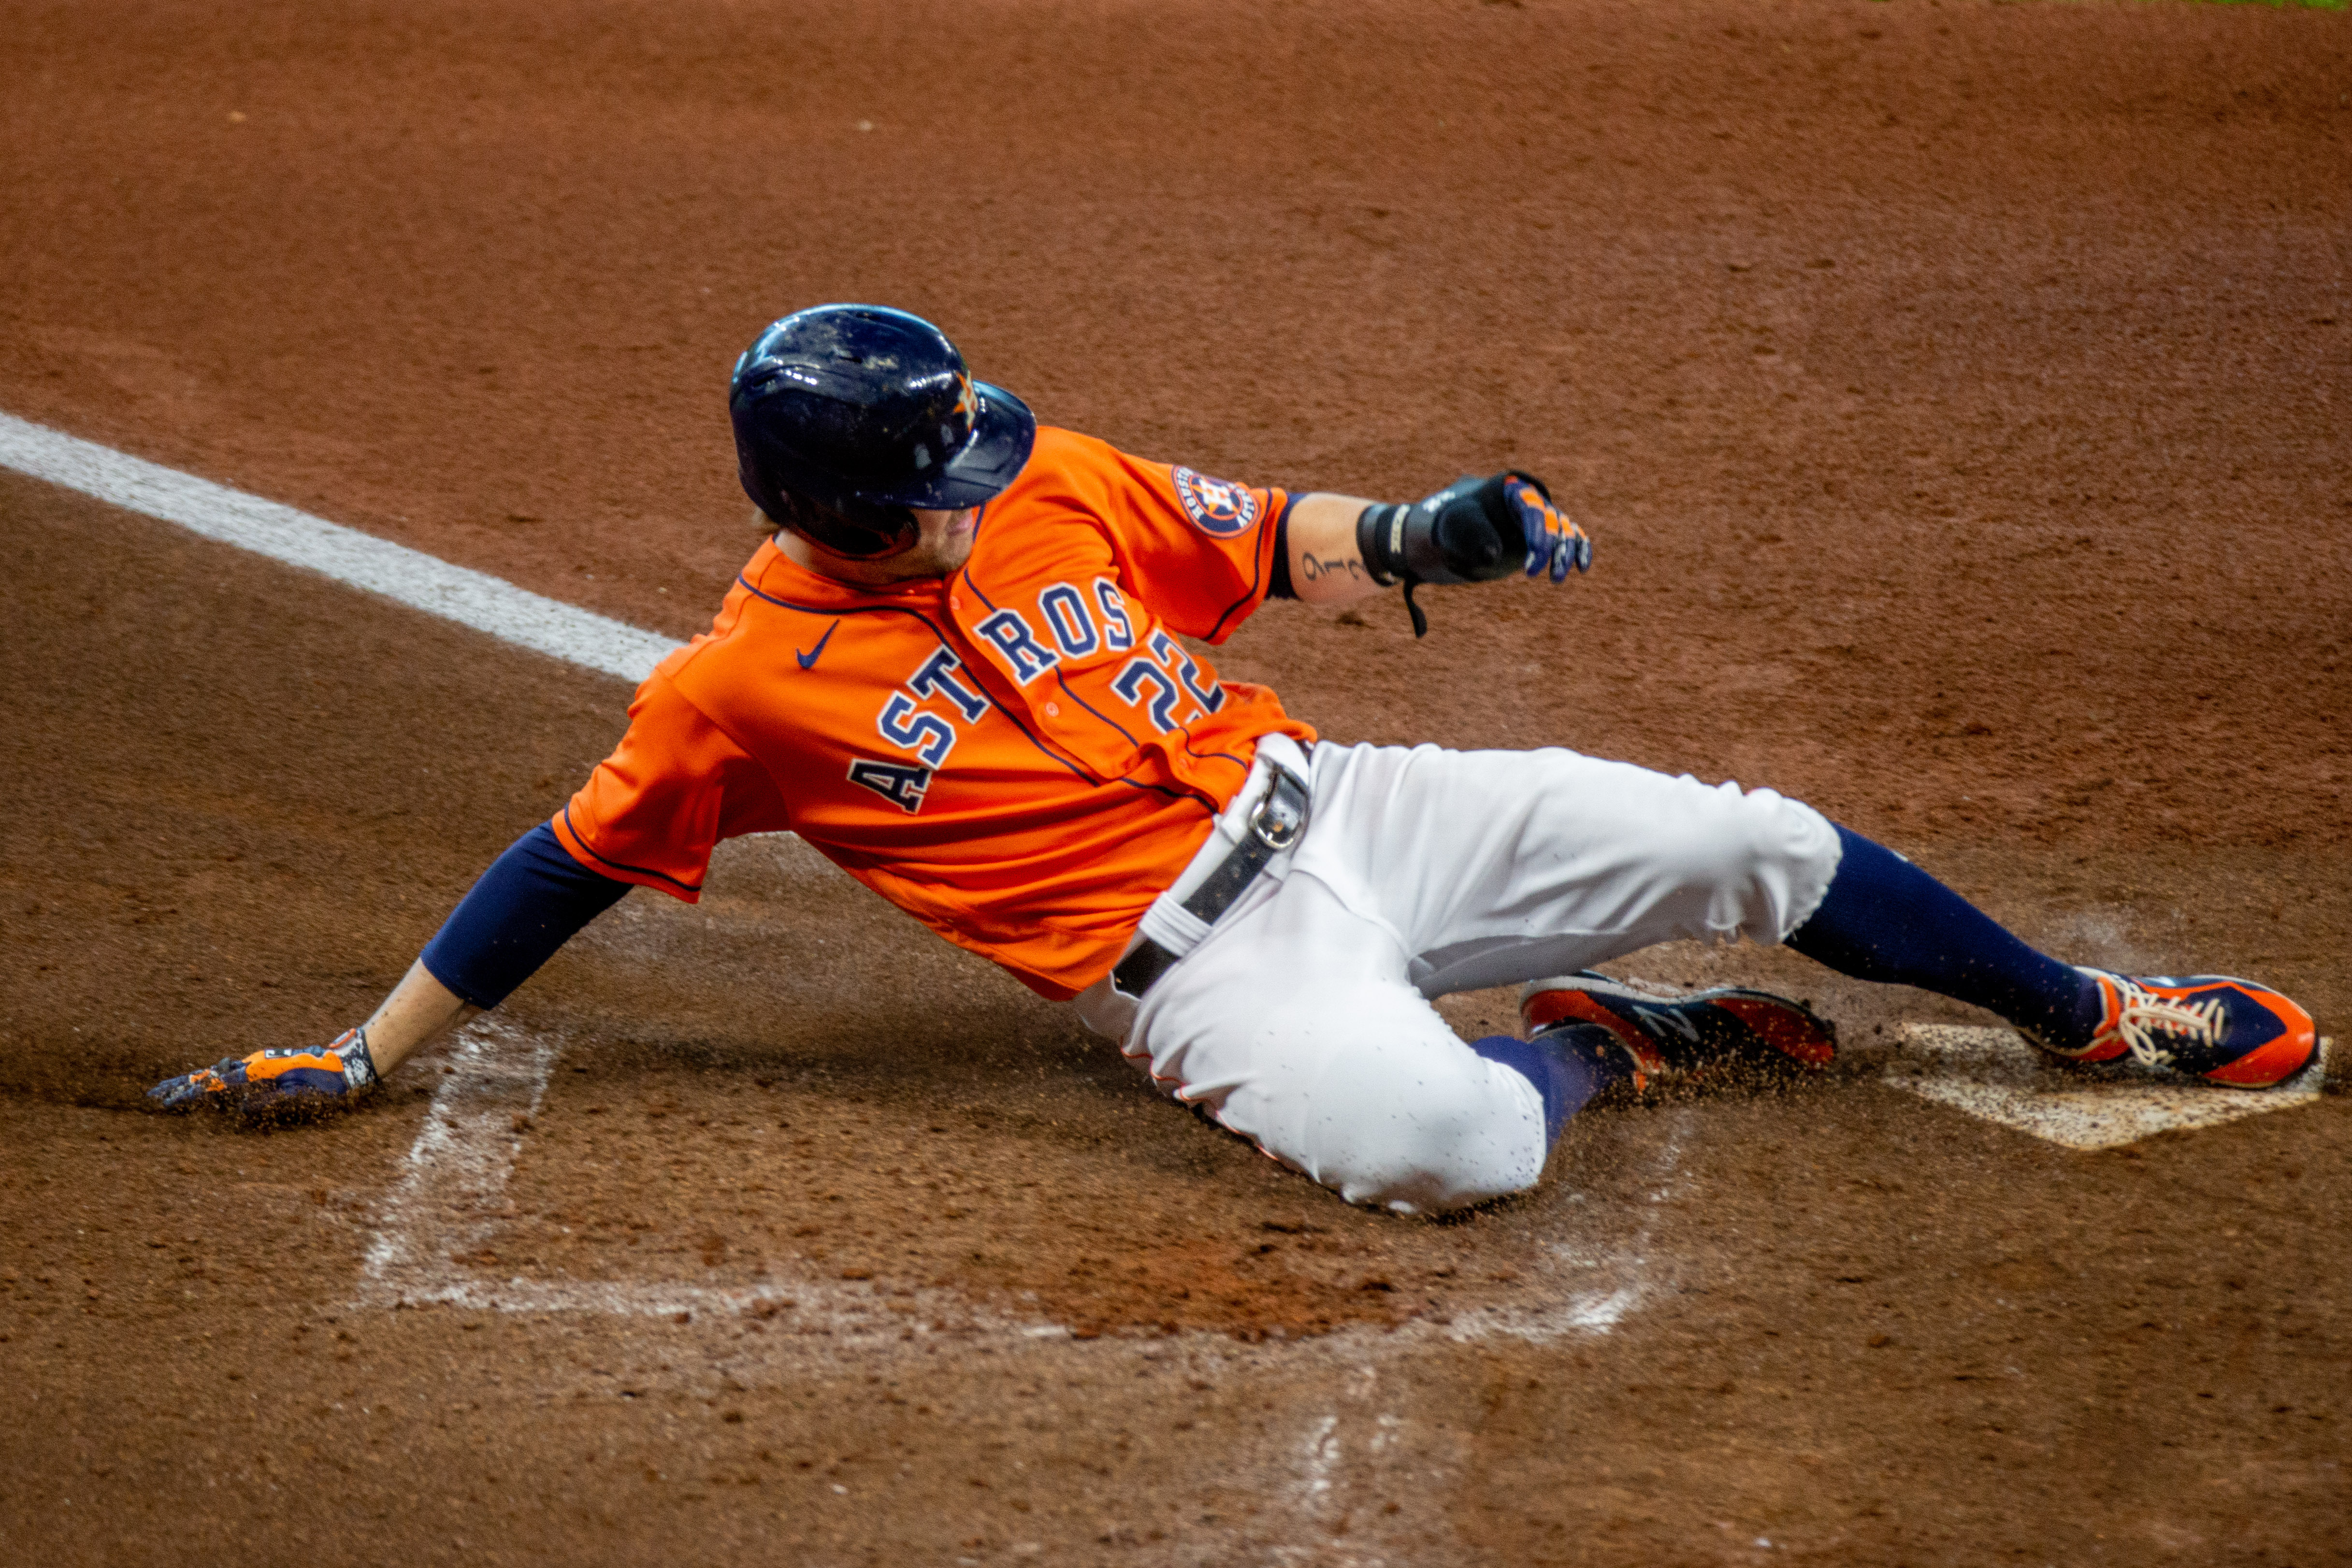 MLB: AUG 25 Angels at Astros - Game 1